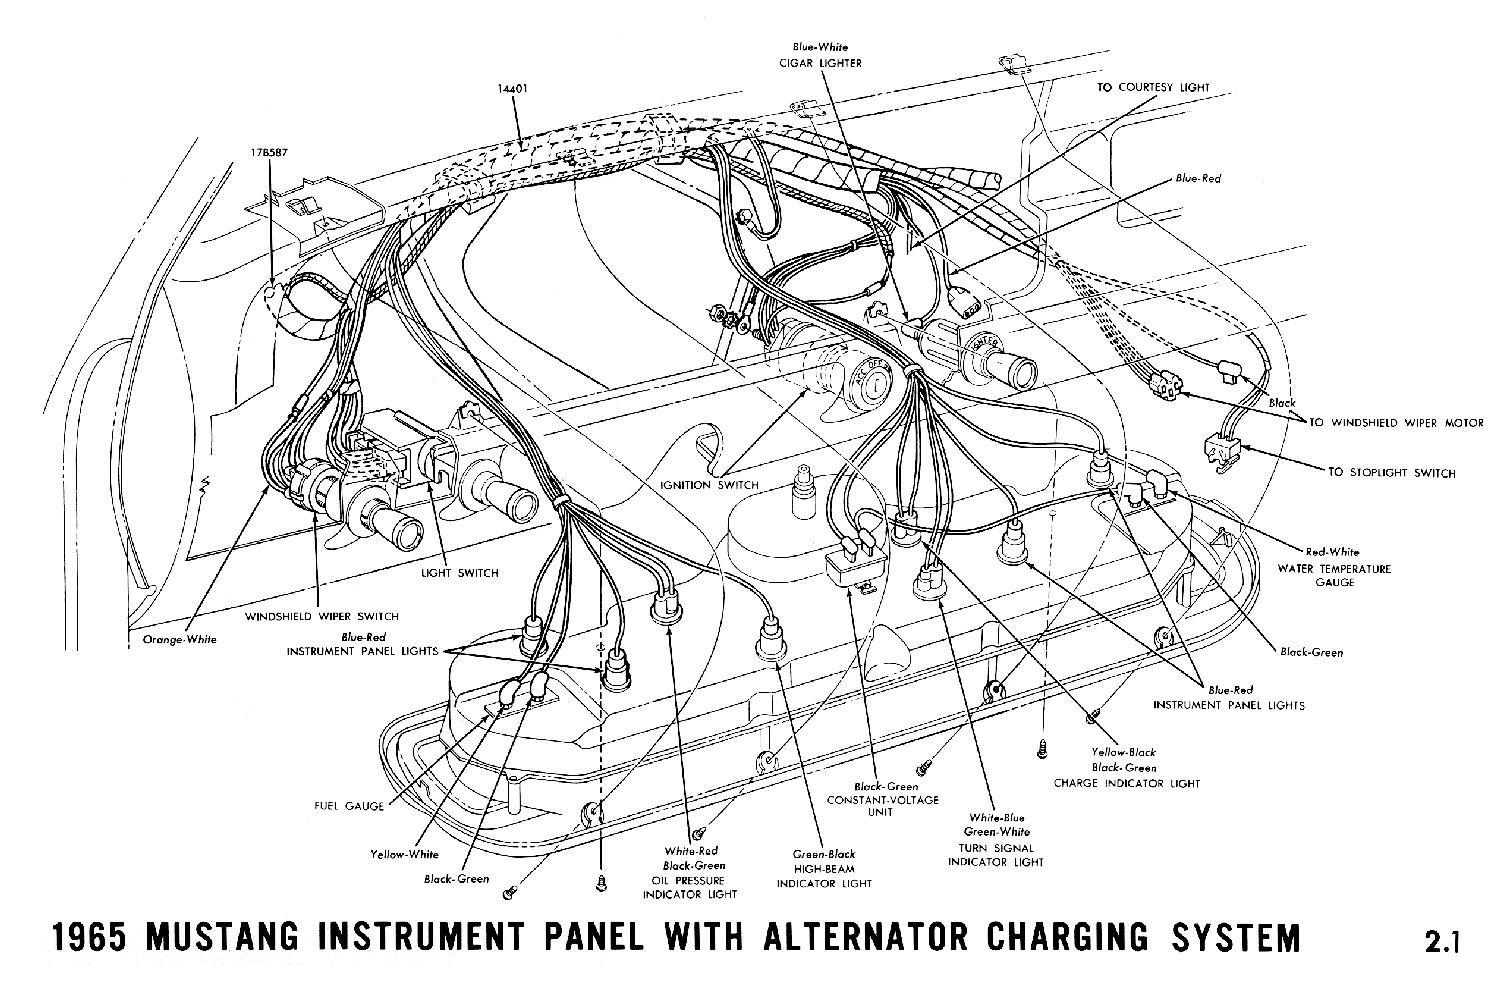 3 speed wiper motor wiring diagram